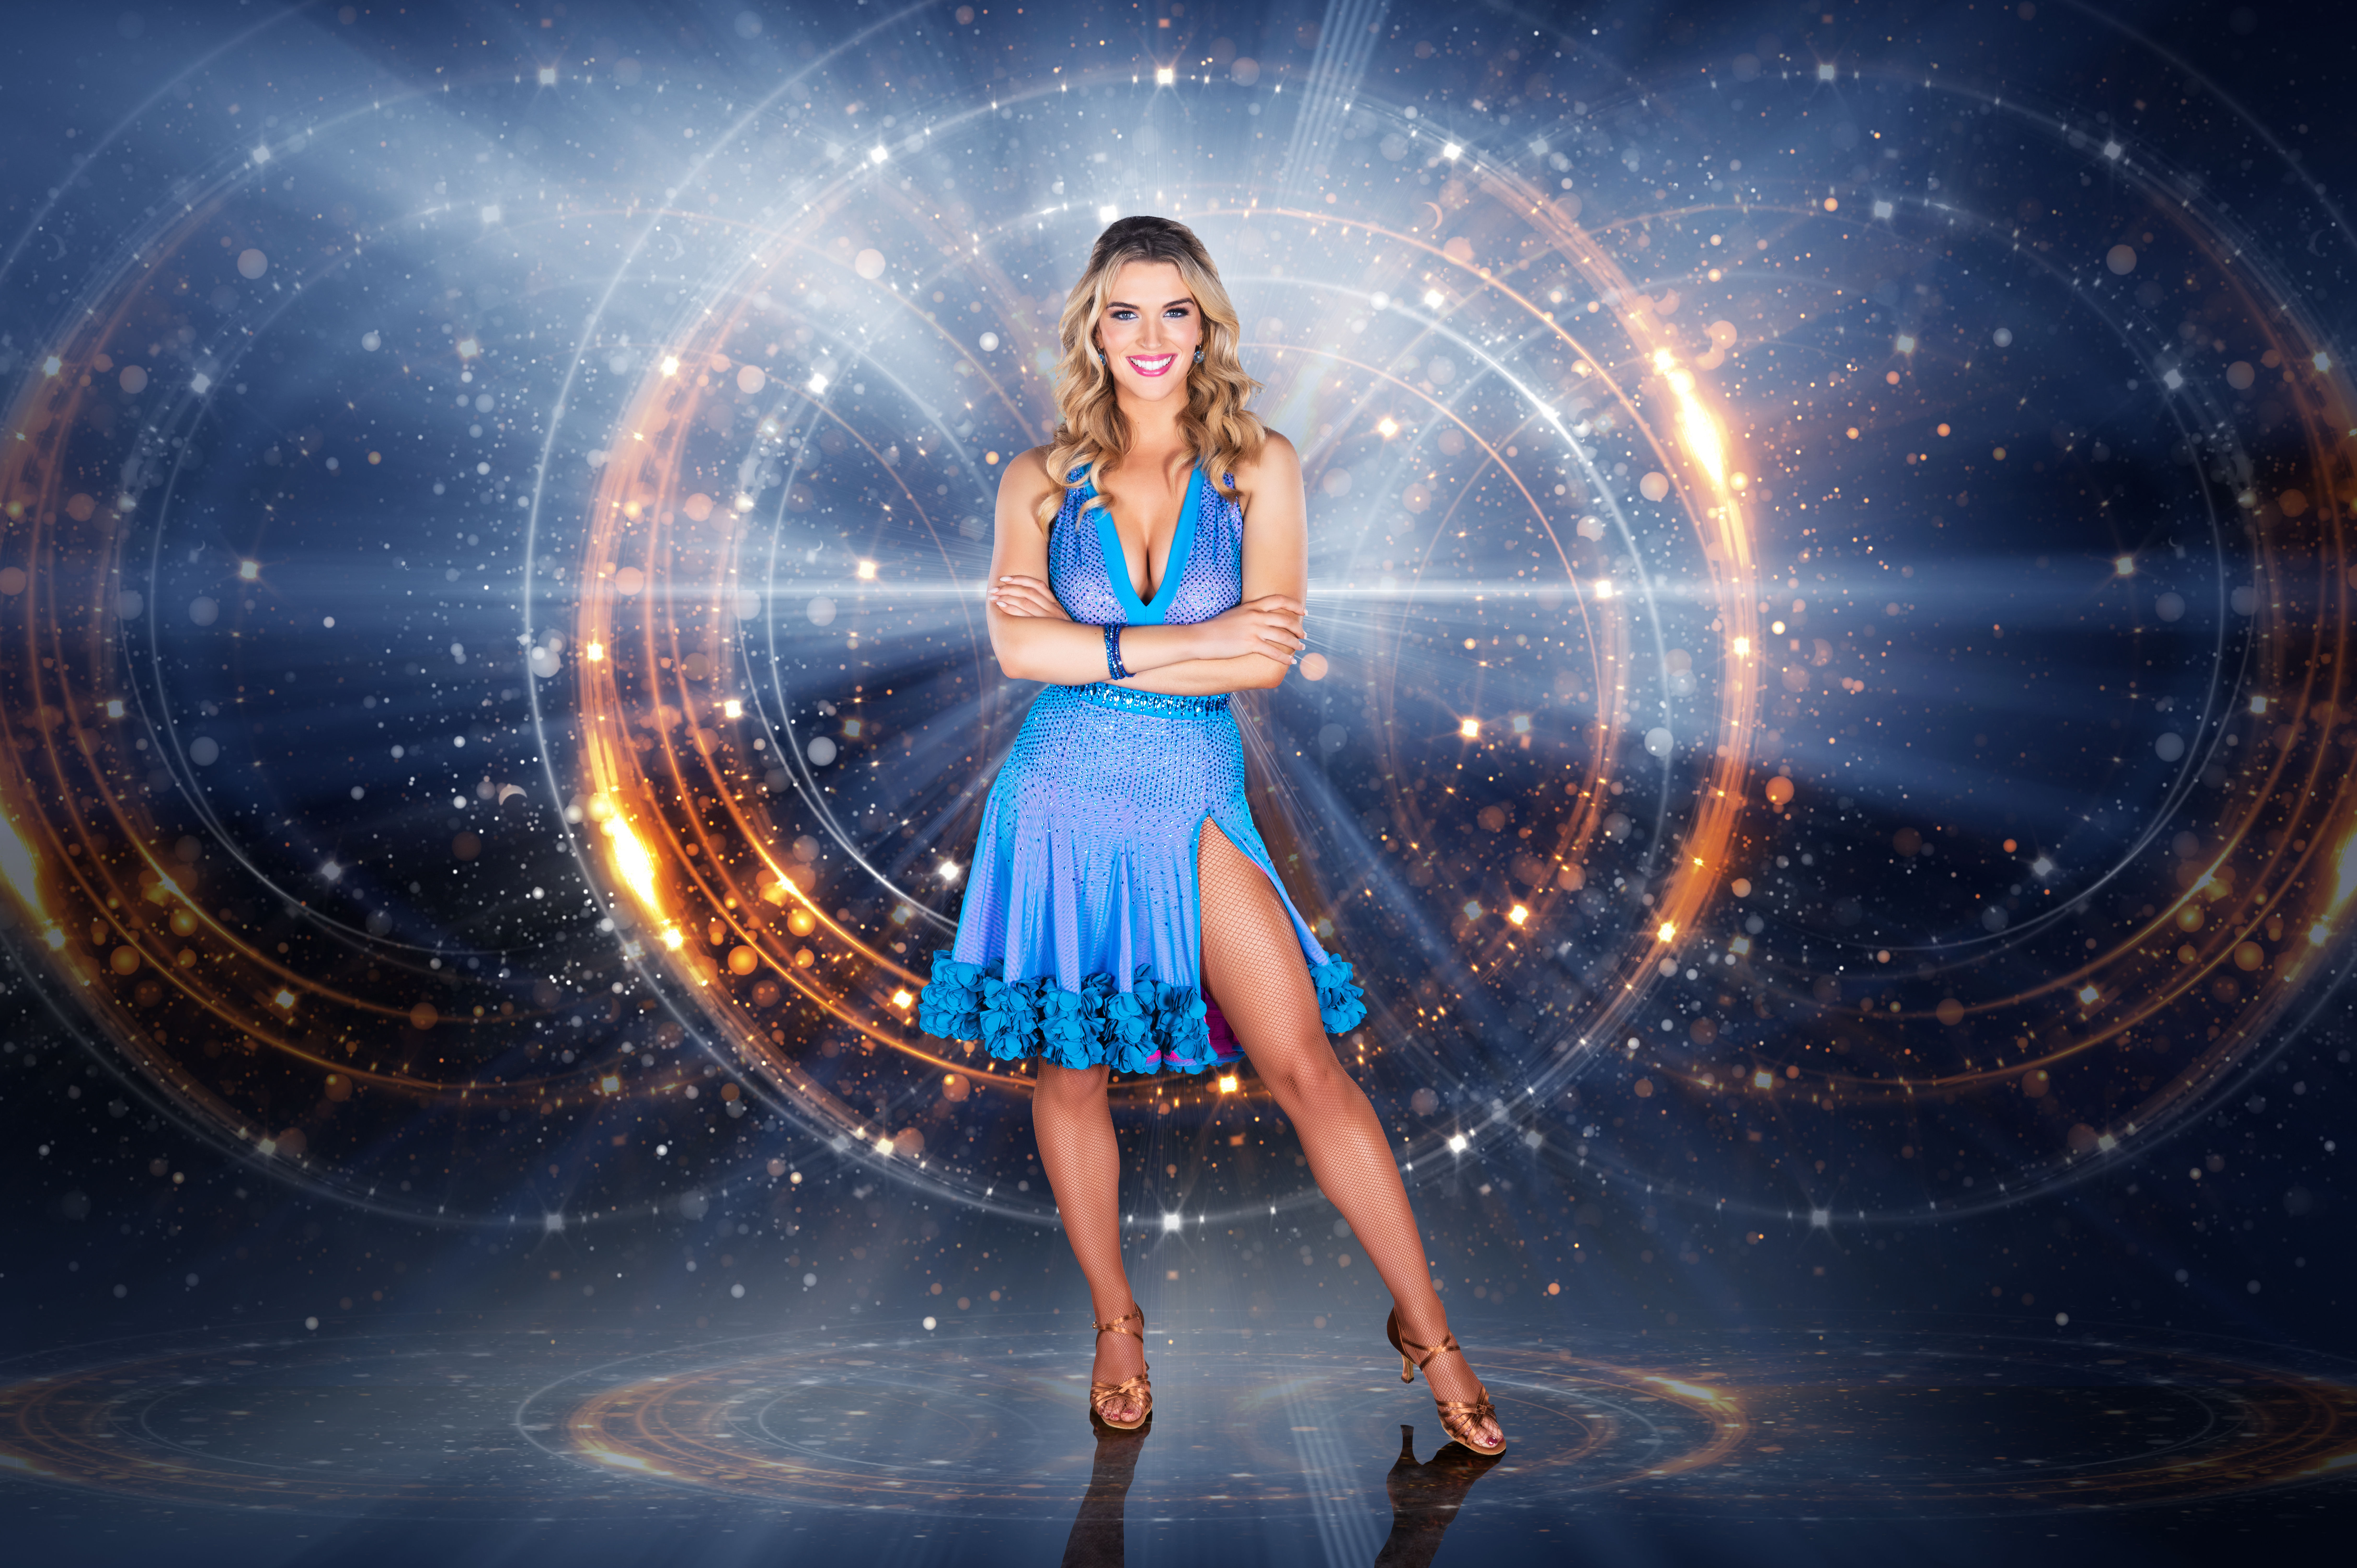 Grainne Dancing with the stars